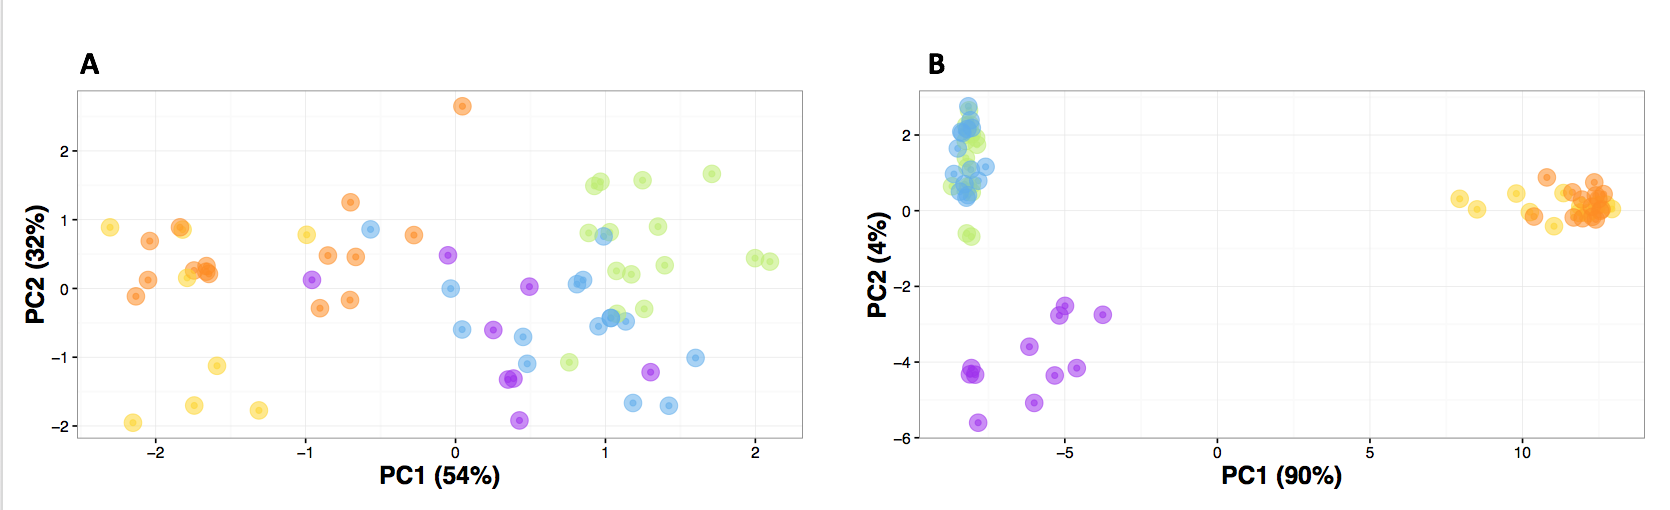 PCA plot of Saltmarsh and Nelson's sparrows for three morphological traits (A) and PCA plot of Saltmarsh and Nelson's sparrows for 1,929 SNPs (B). Colors represent subspecies groups